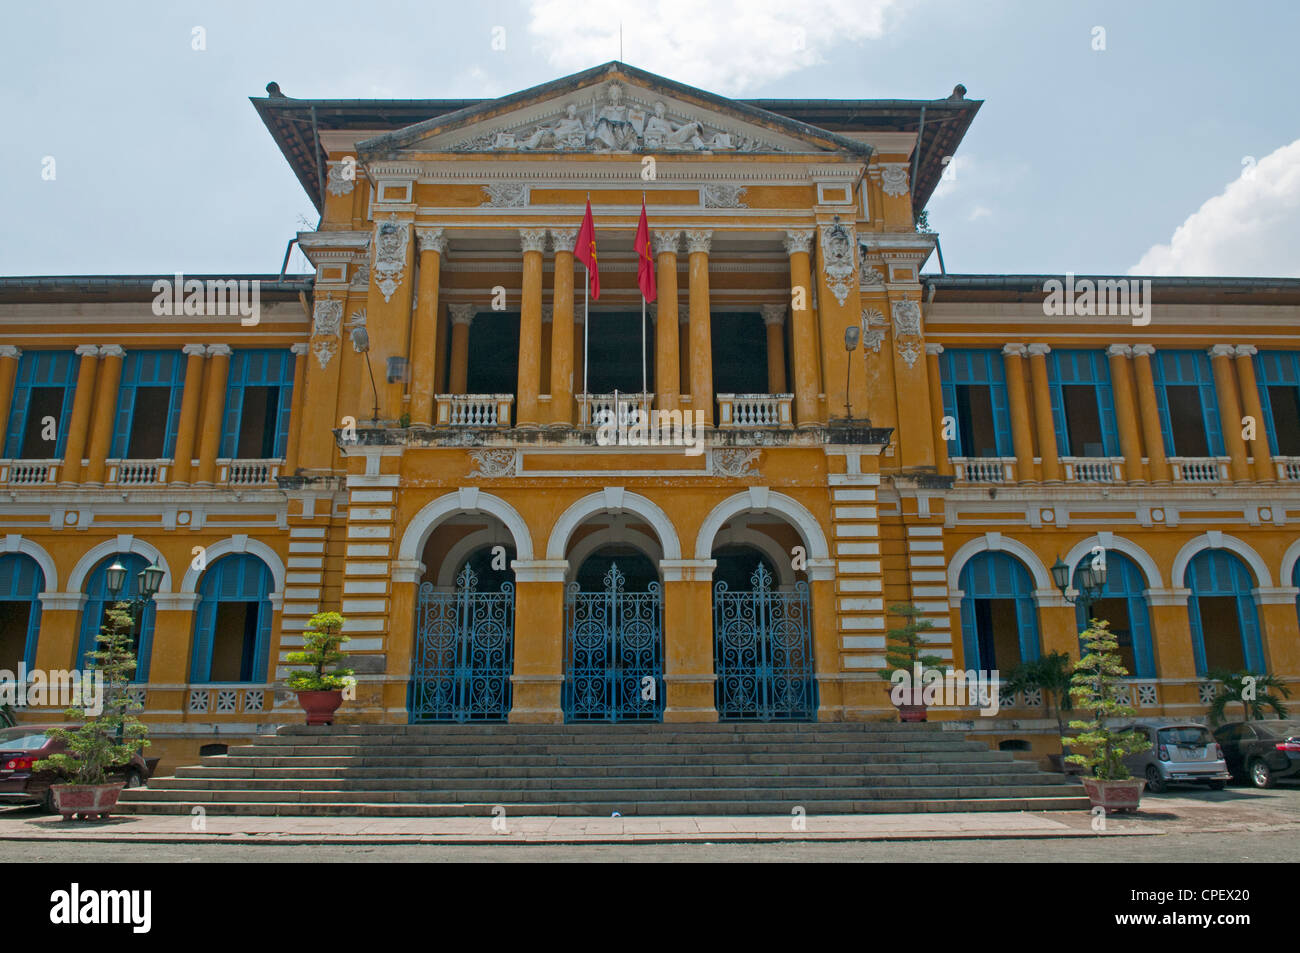 Colonial Architecture In Ho Chi Minh City Vietnam Stock Photo Alamy